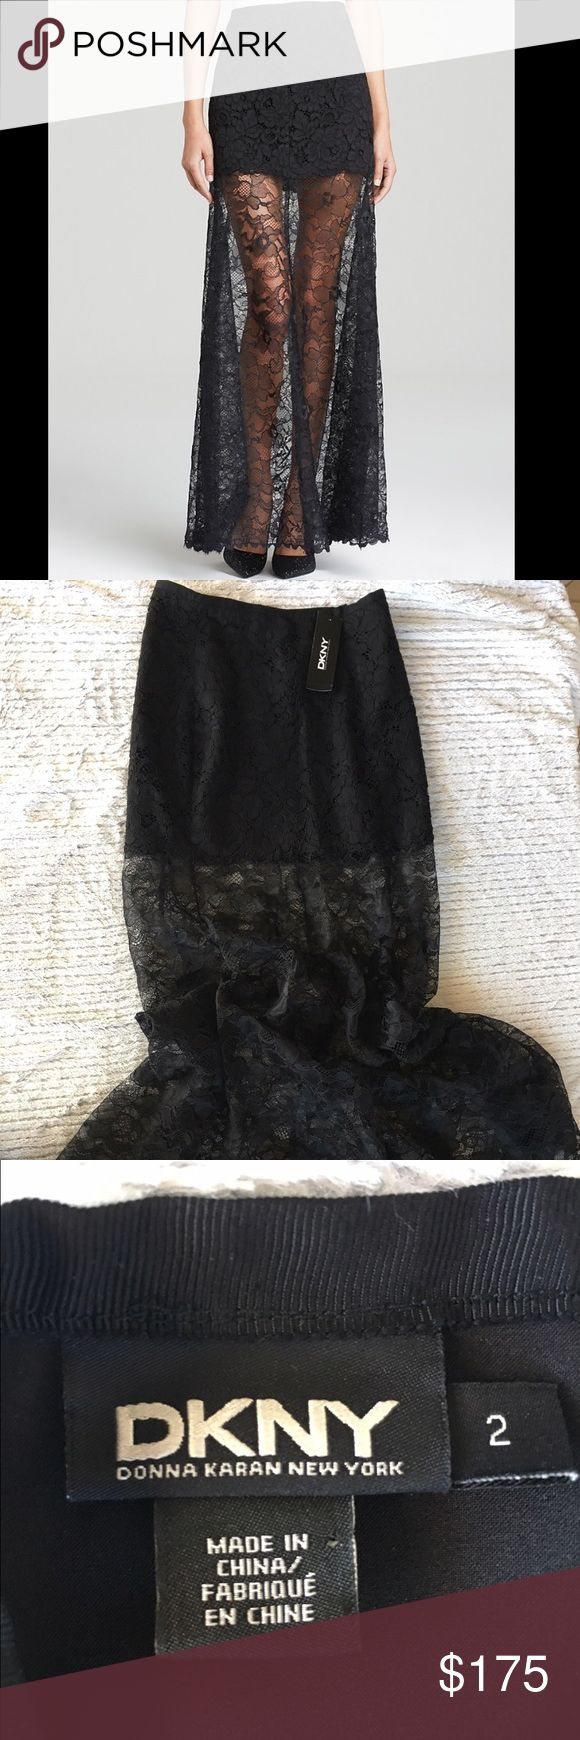 NWT DKNY Black Lace Maxi Skirt NWT! DKNY Black Lace Maxi Skirt. Only worn to try on and fits like a glove! DKNY Skirts Maxi